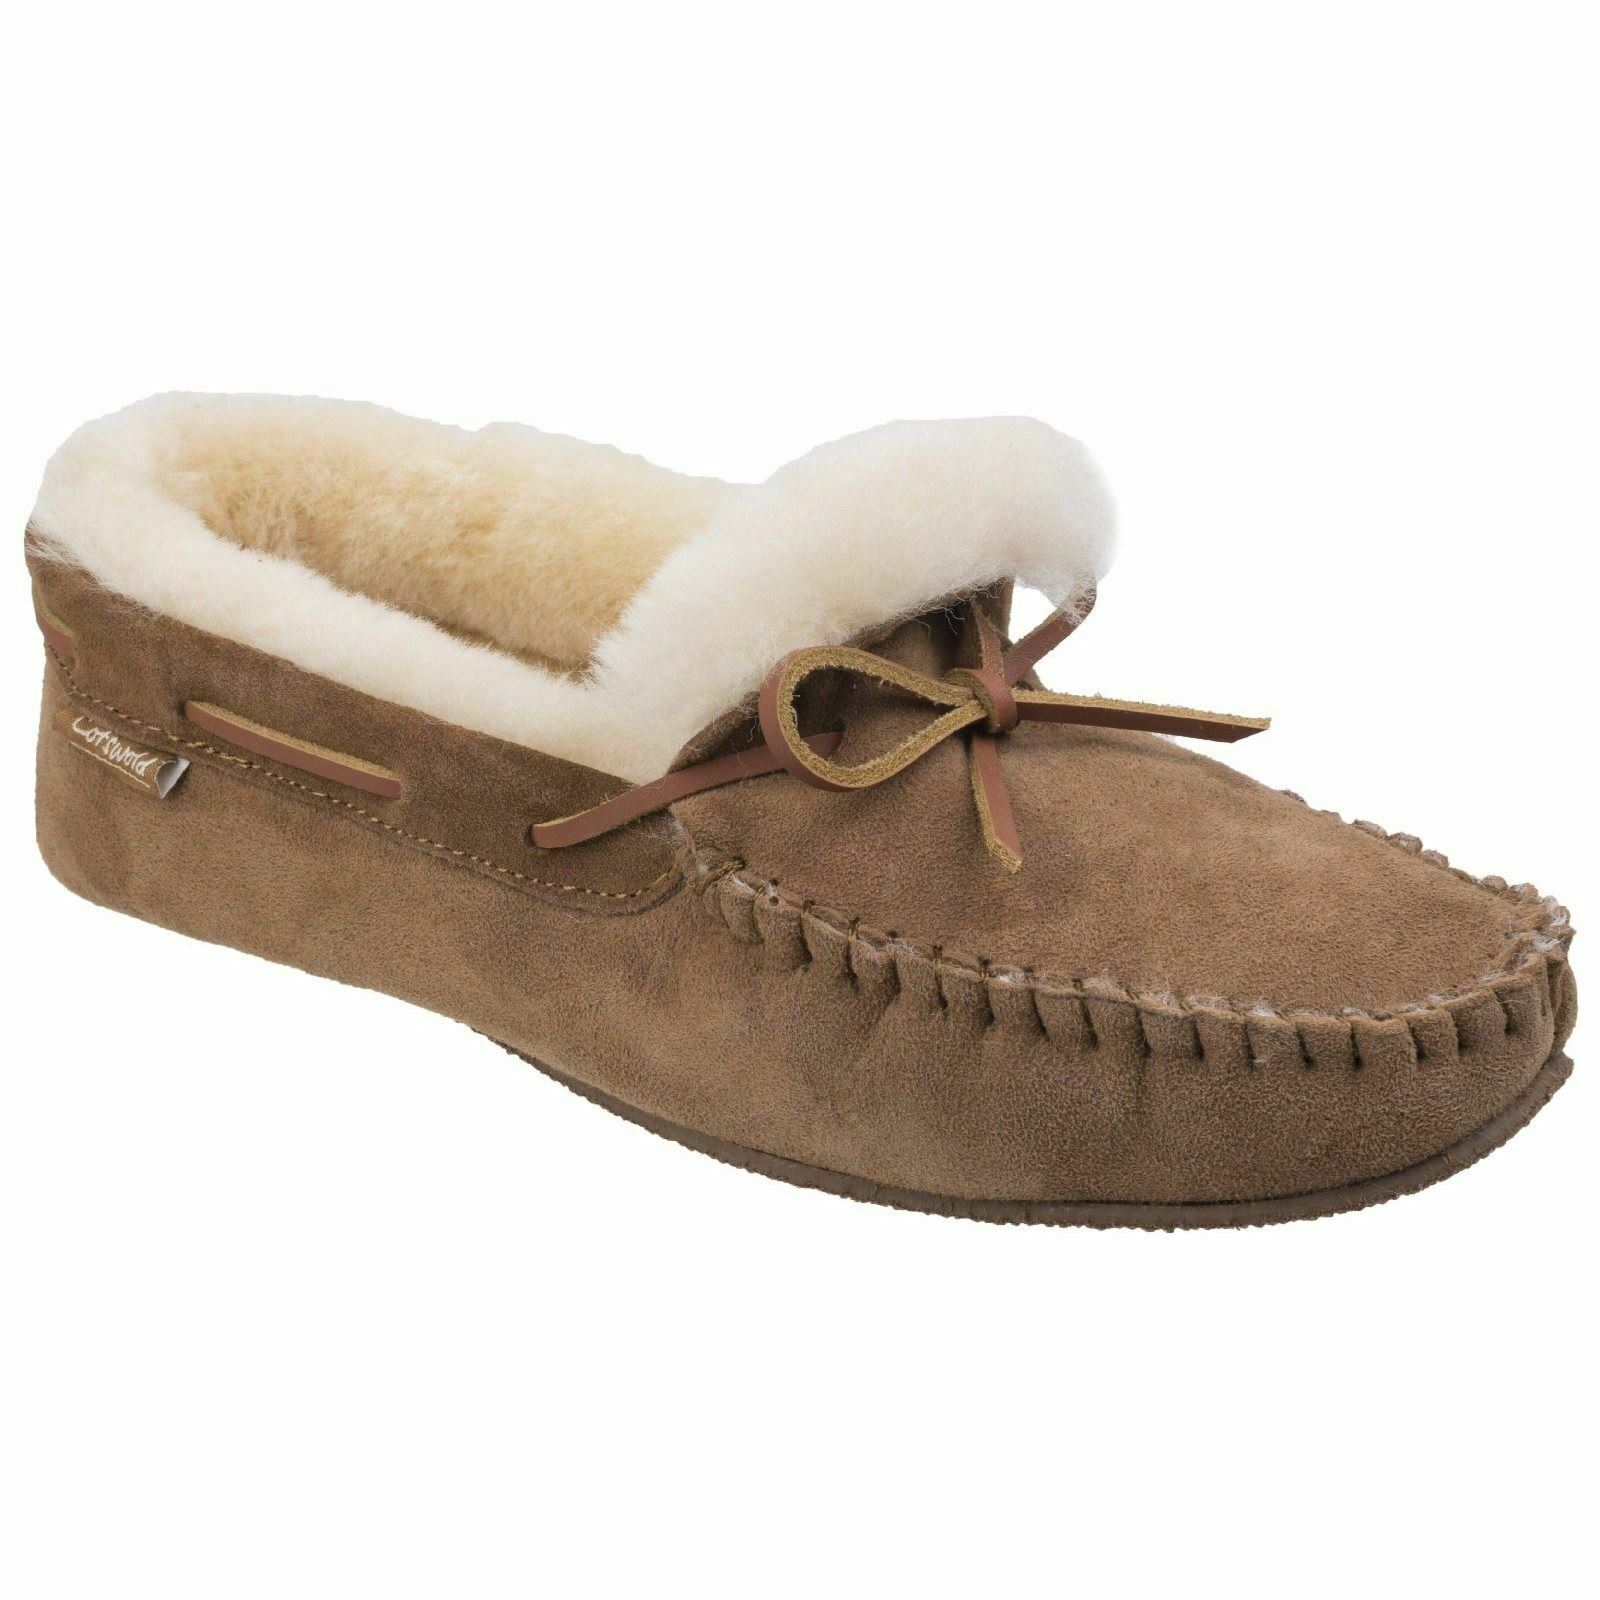 Cotswold Chastleton Chesnutt Classic Mens Slippers Leather